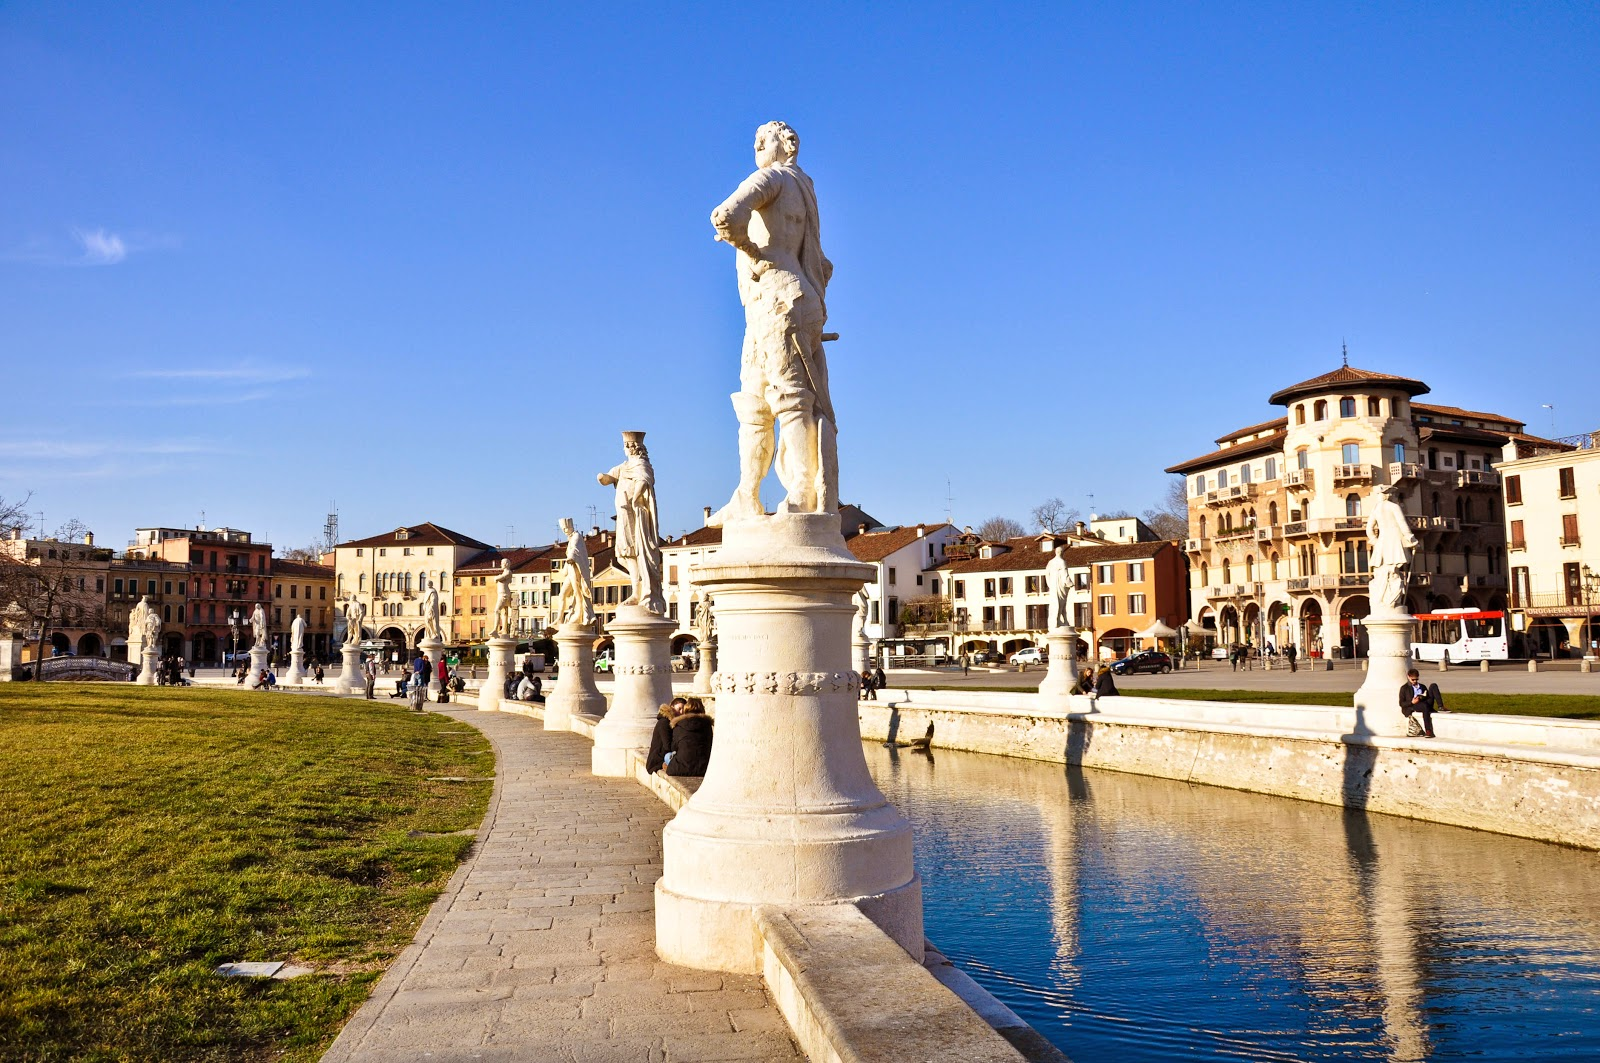 Padua's Prato della Valle is the biggest square in Italy